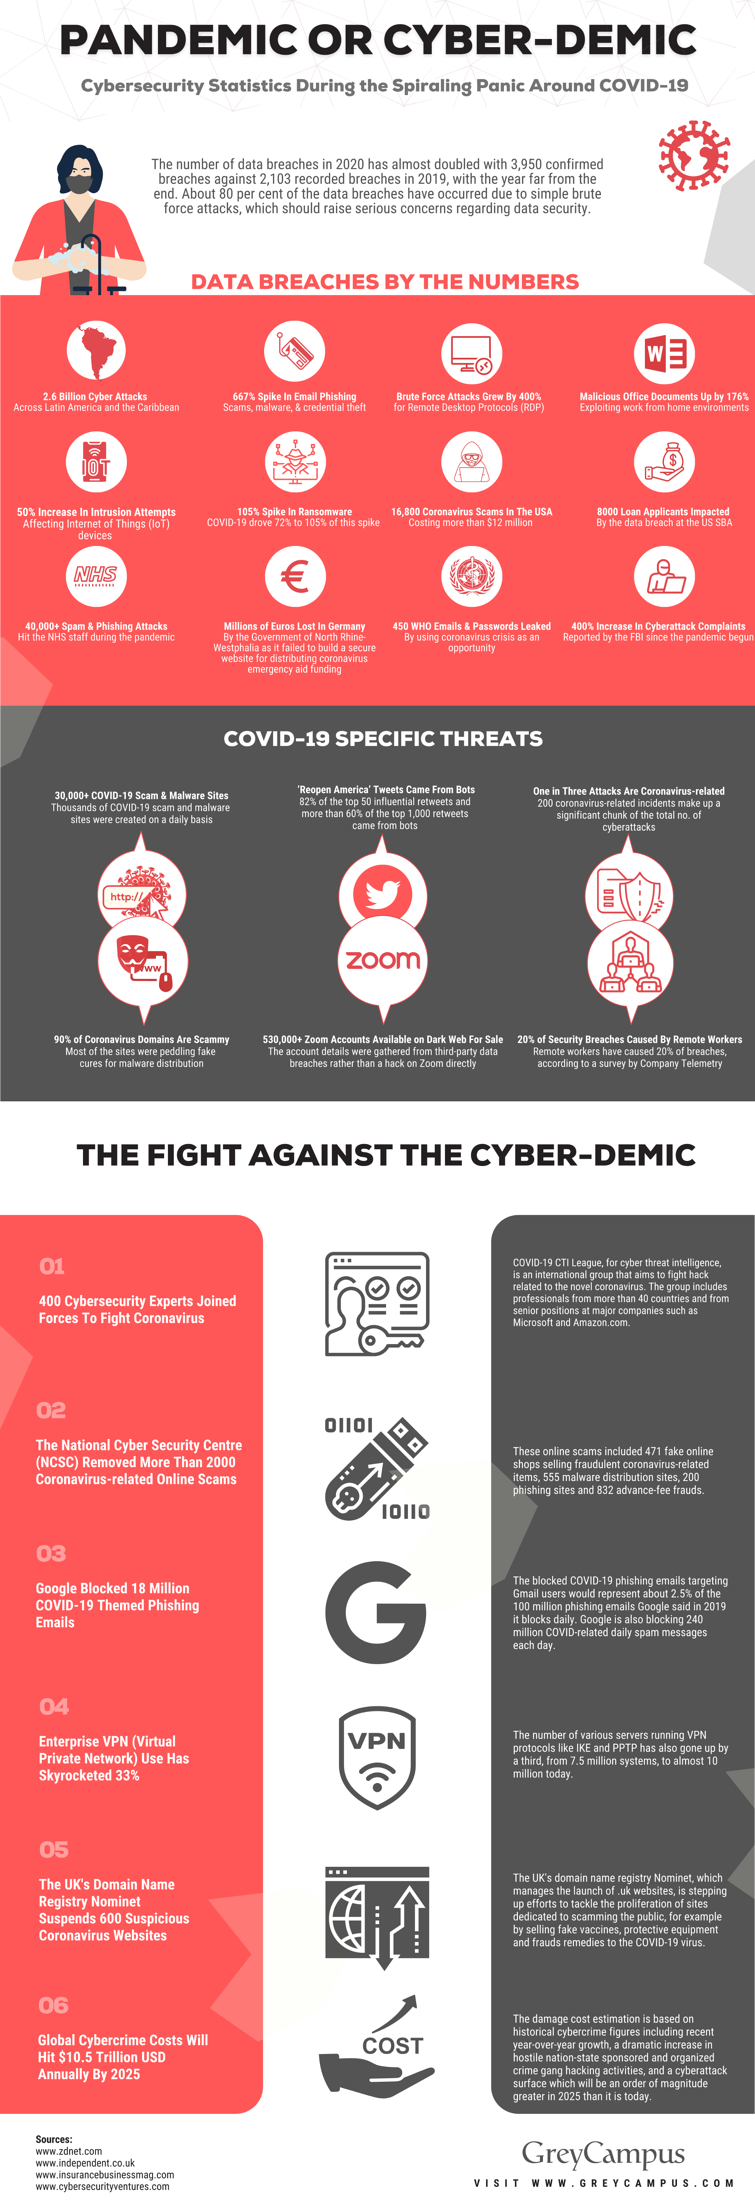 Cyber Security Statistics (Infographic)